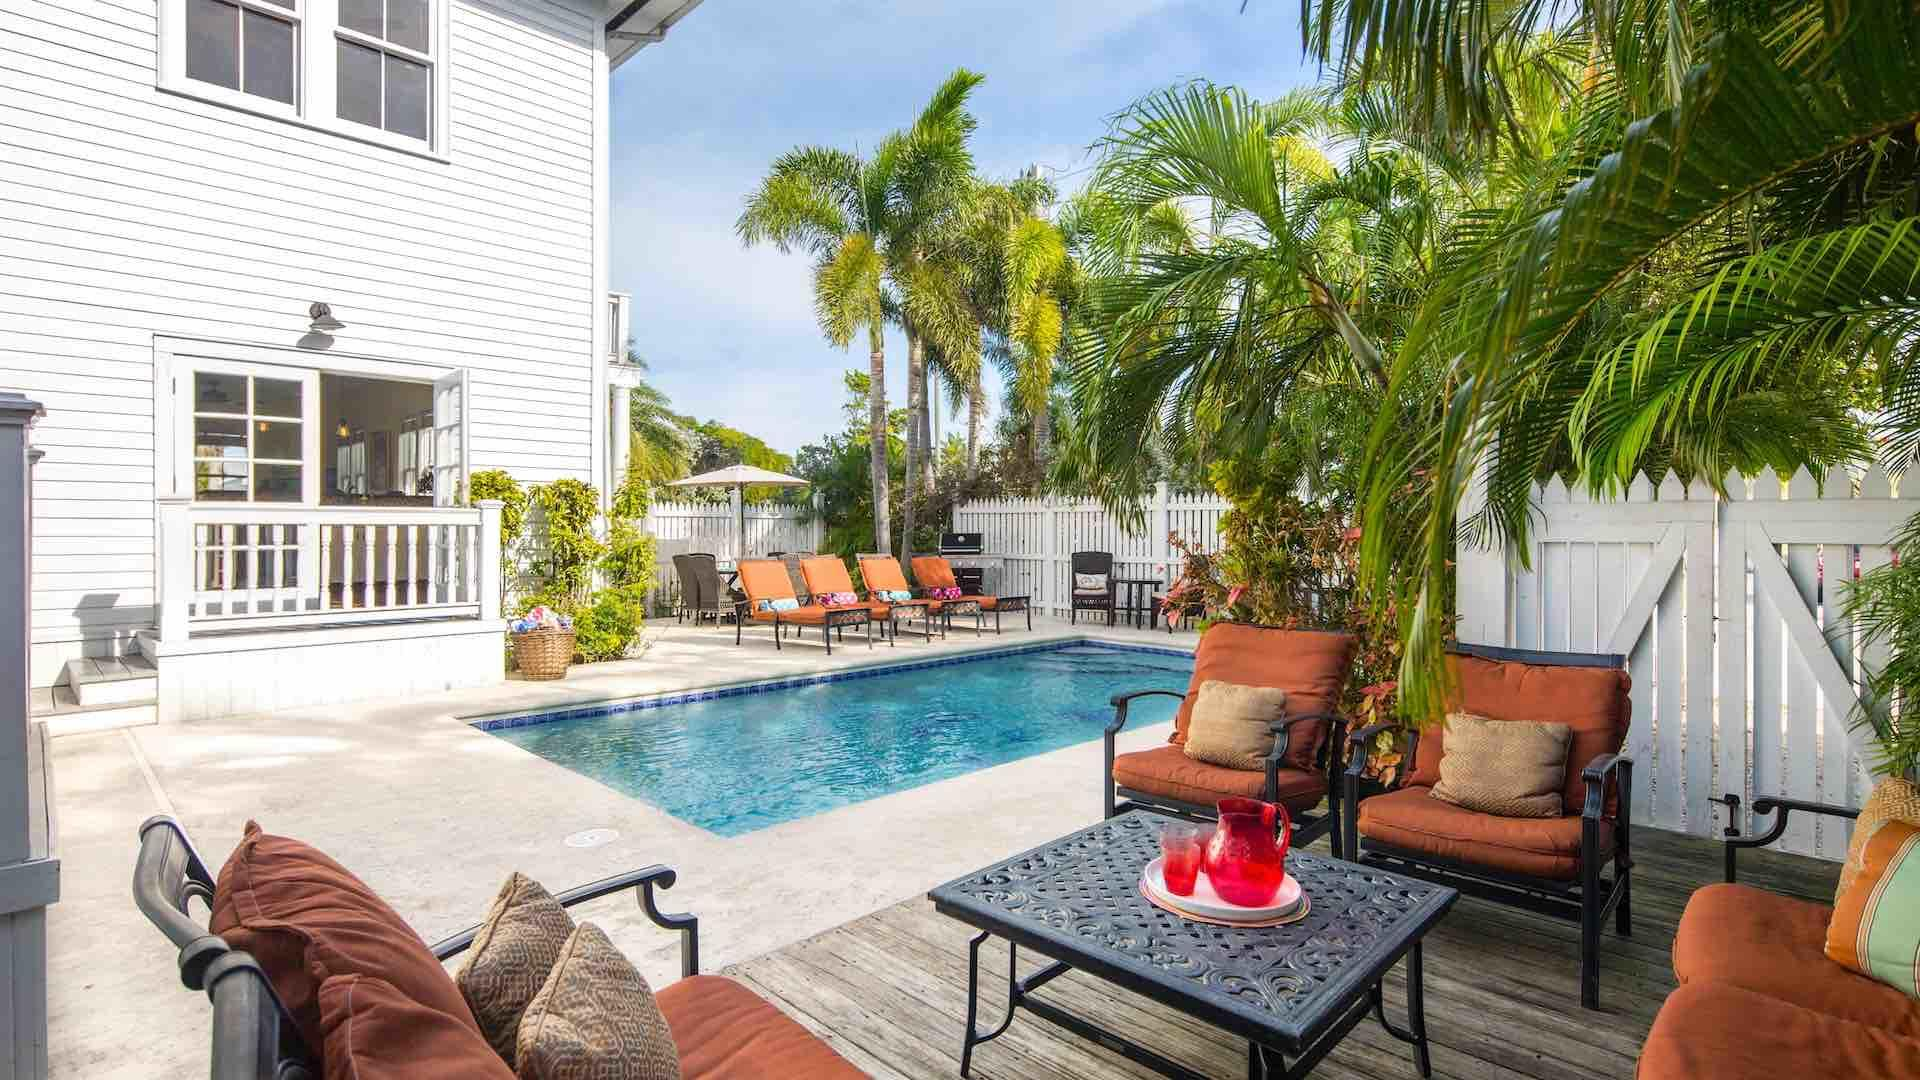 Southernmost Hospitality V has a spacious back yard with a tall fence surrounding the large private pool...